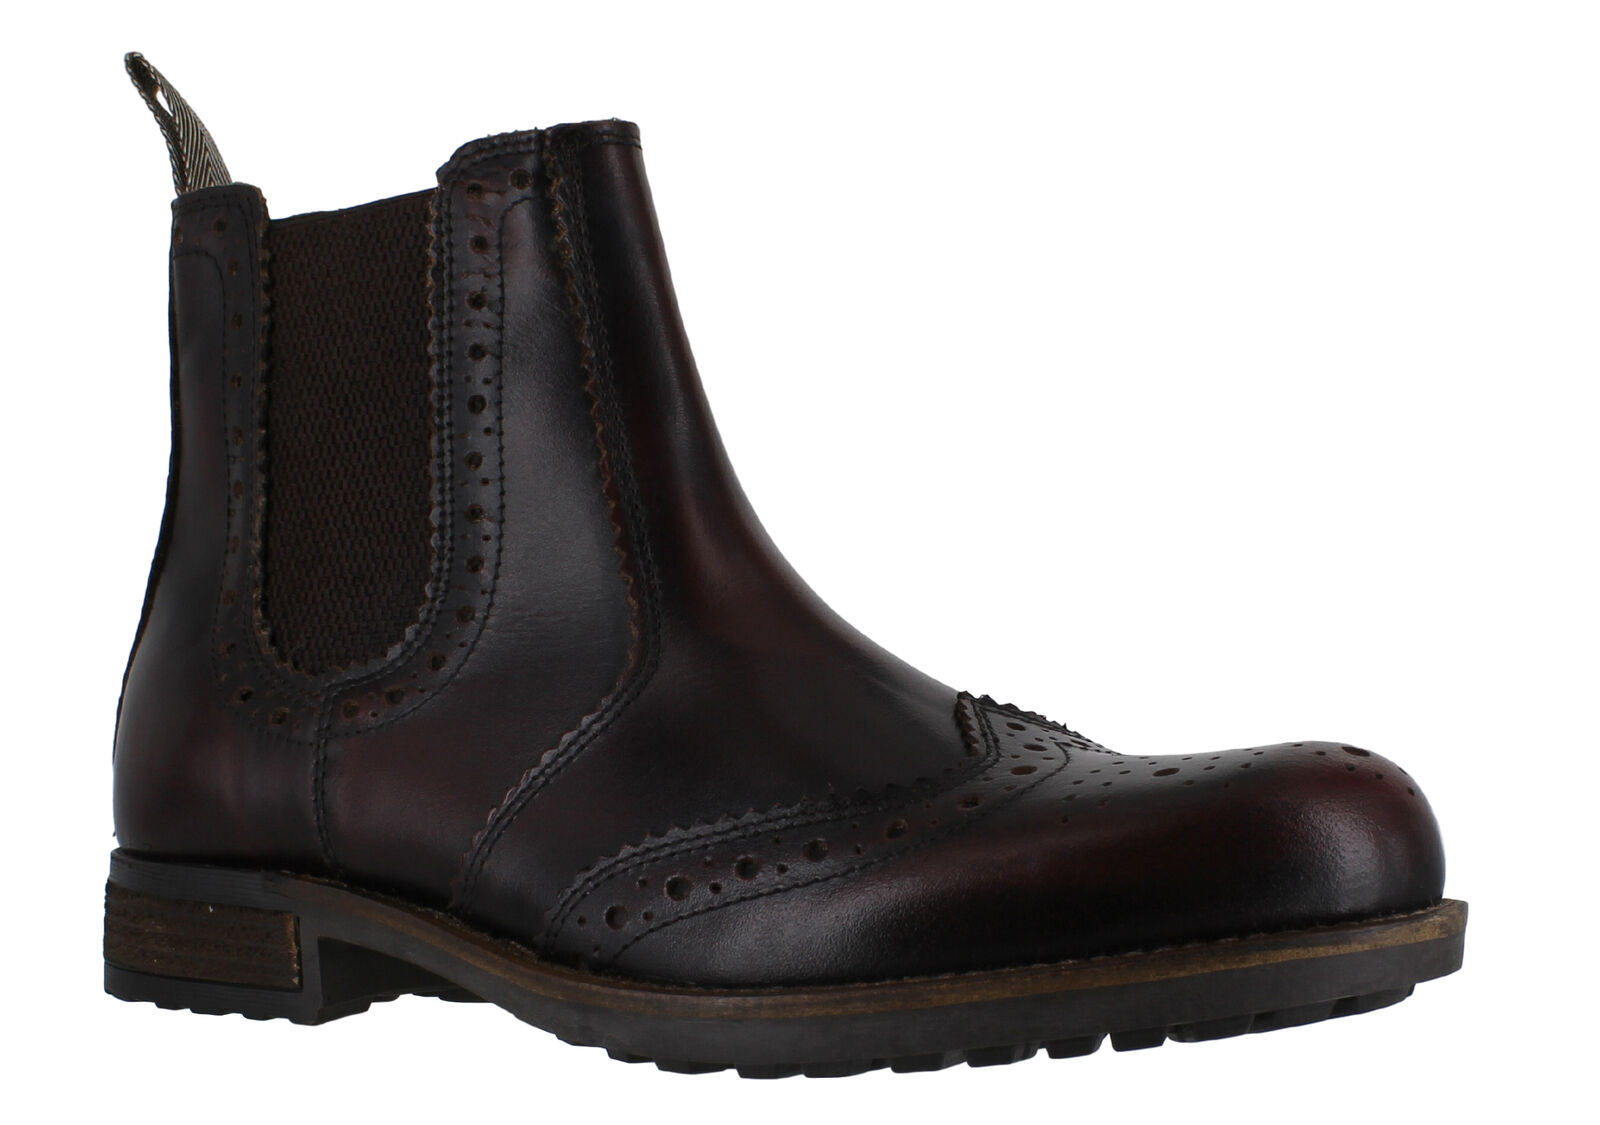 Catesby Mens Bordo Leather Wing Tip Brogues Chelsea Dealer Stiefel